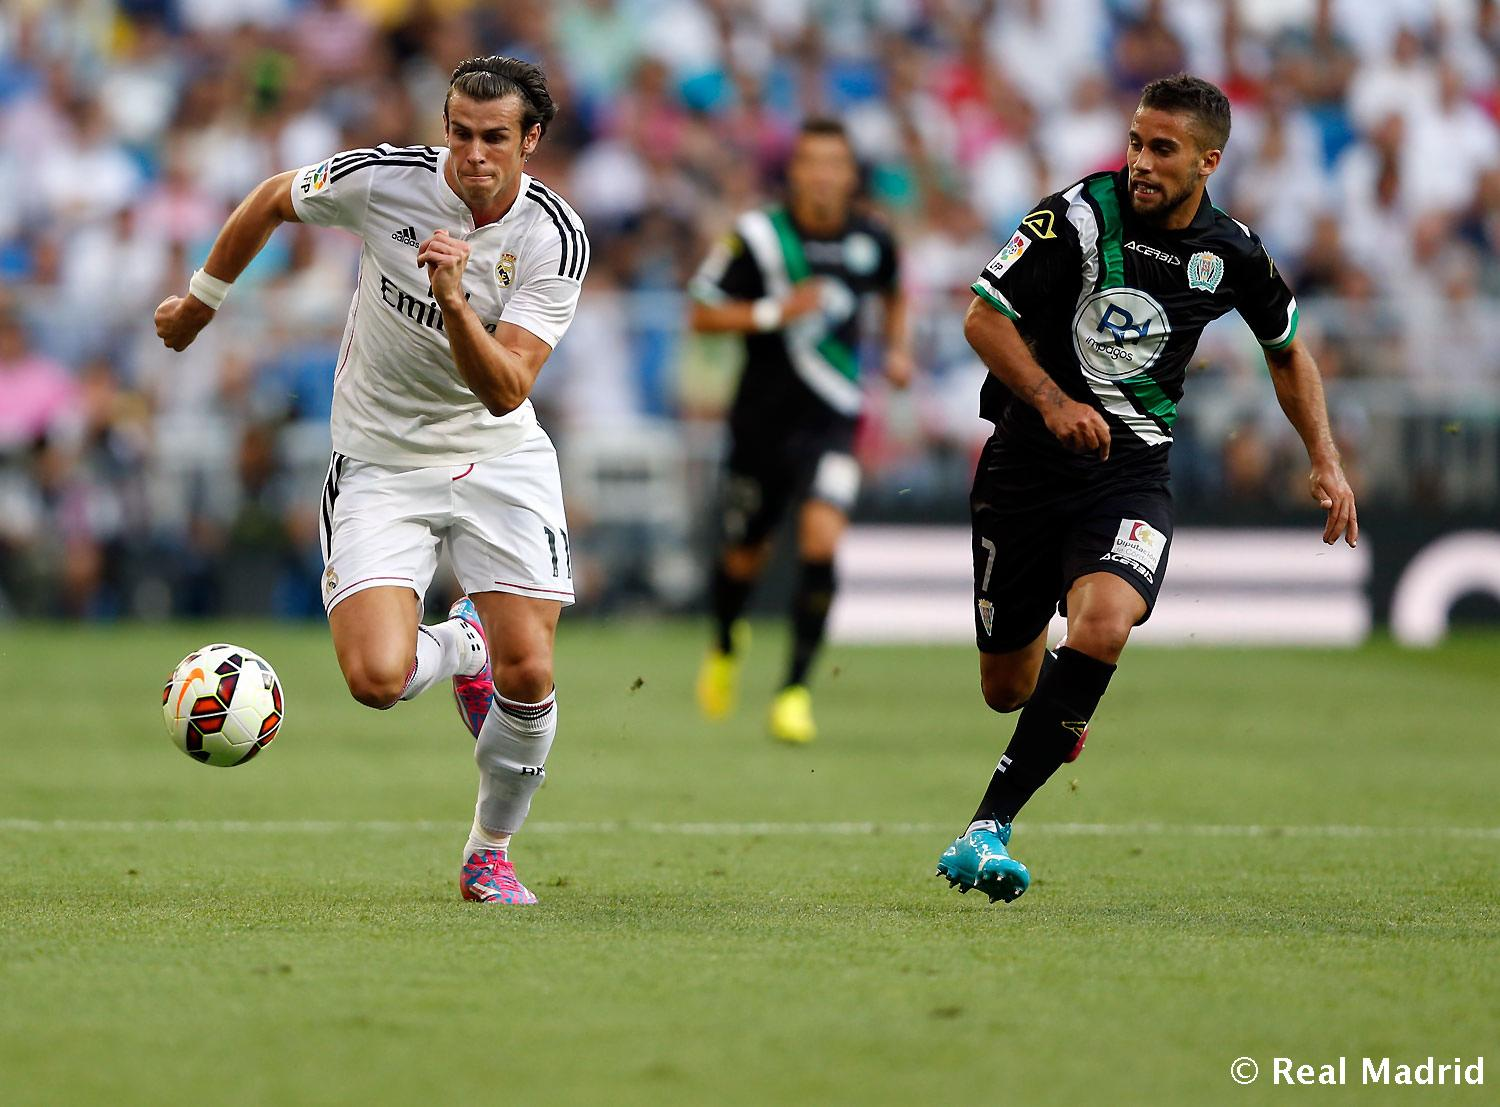 Real Madrid - Real Madrid - Córdoba - 25-08-2014